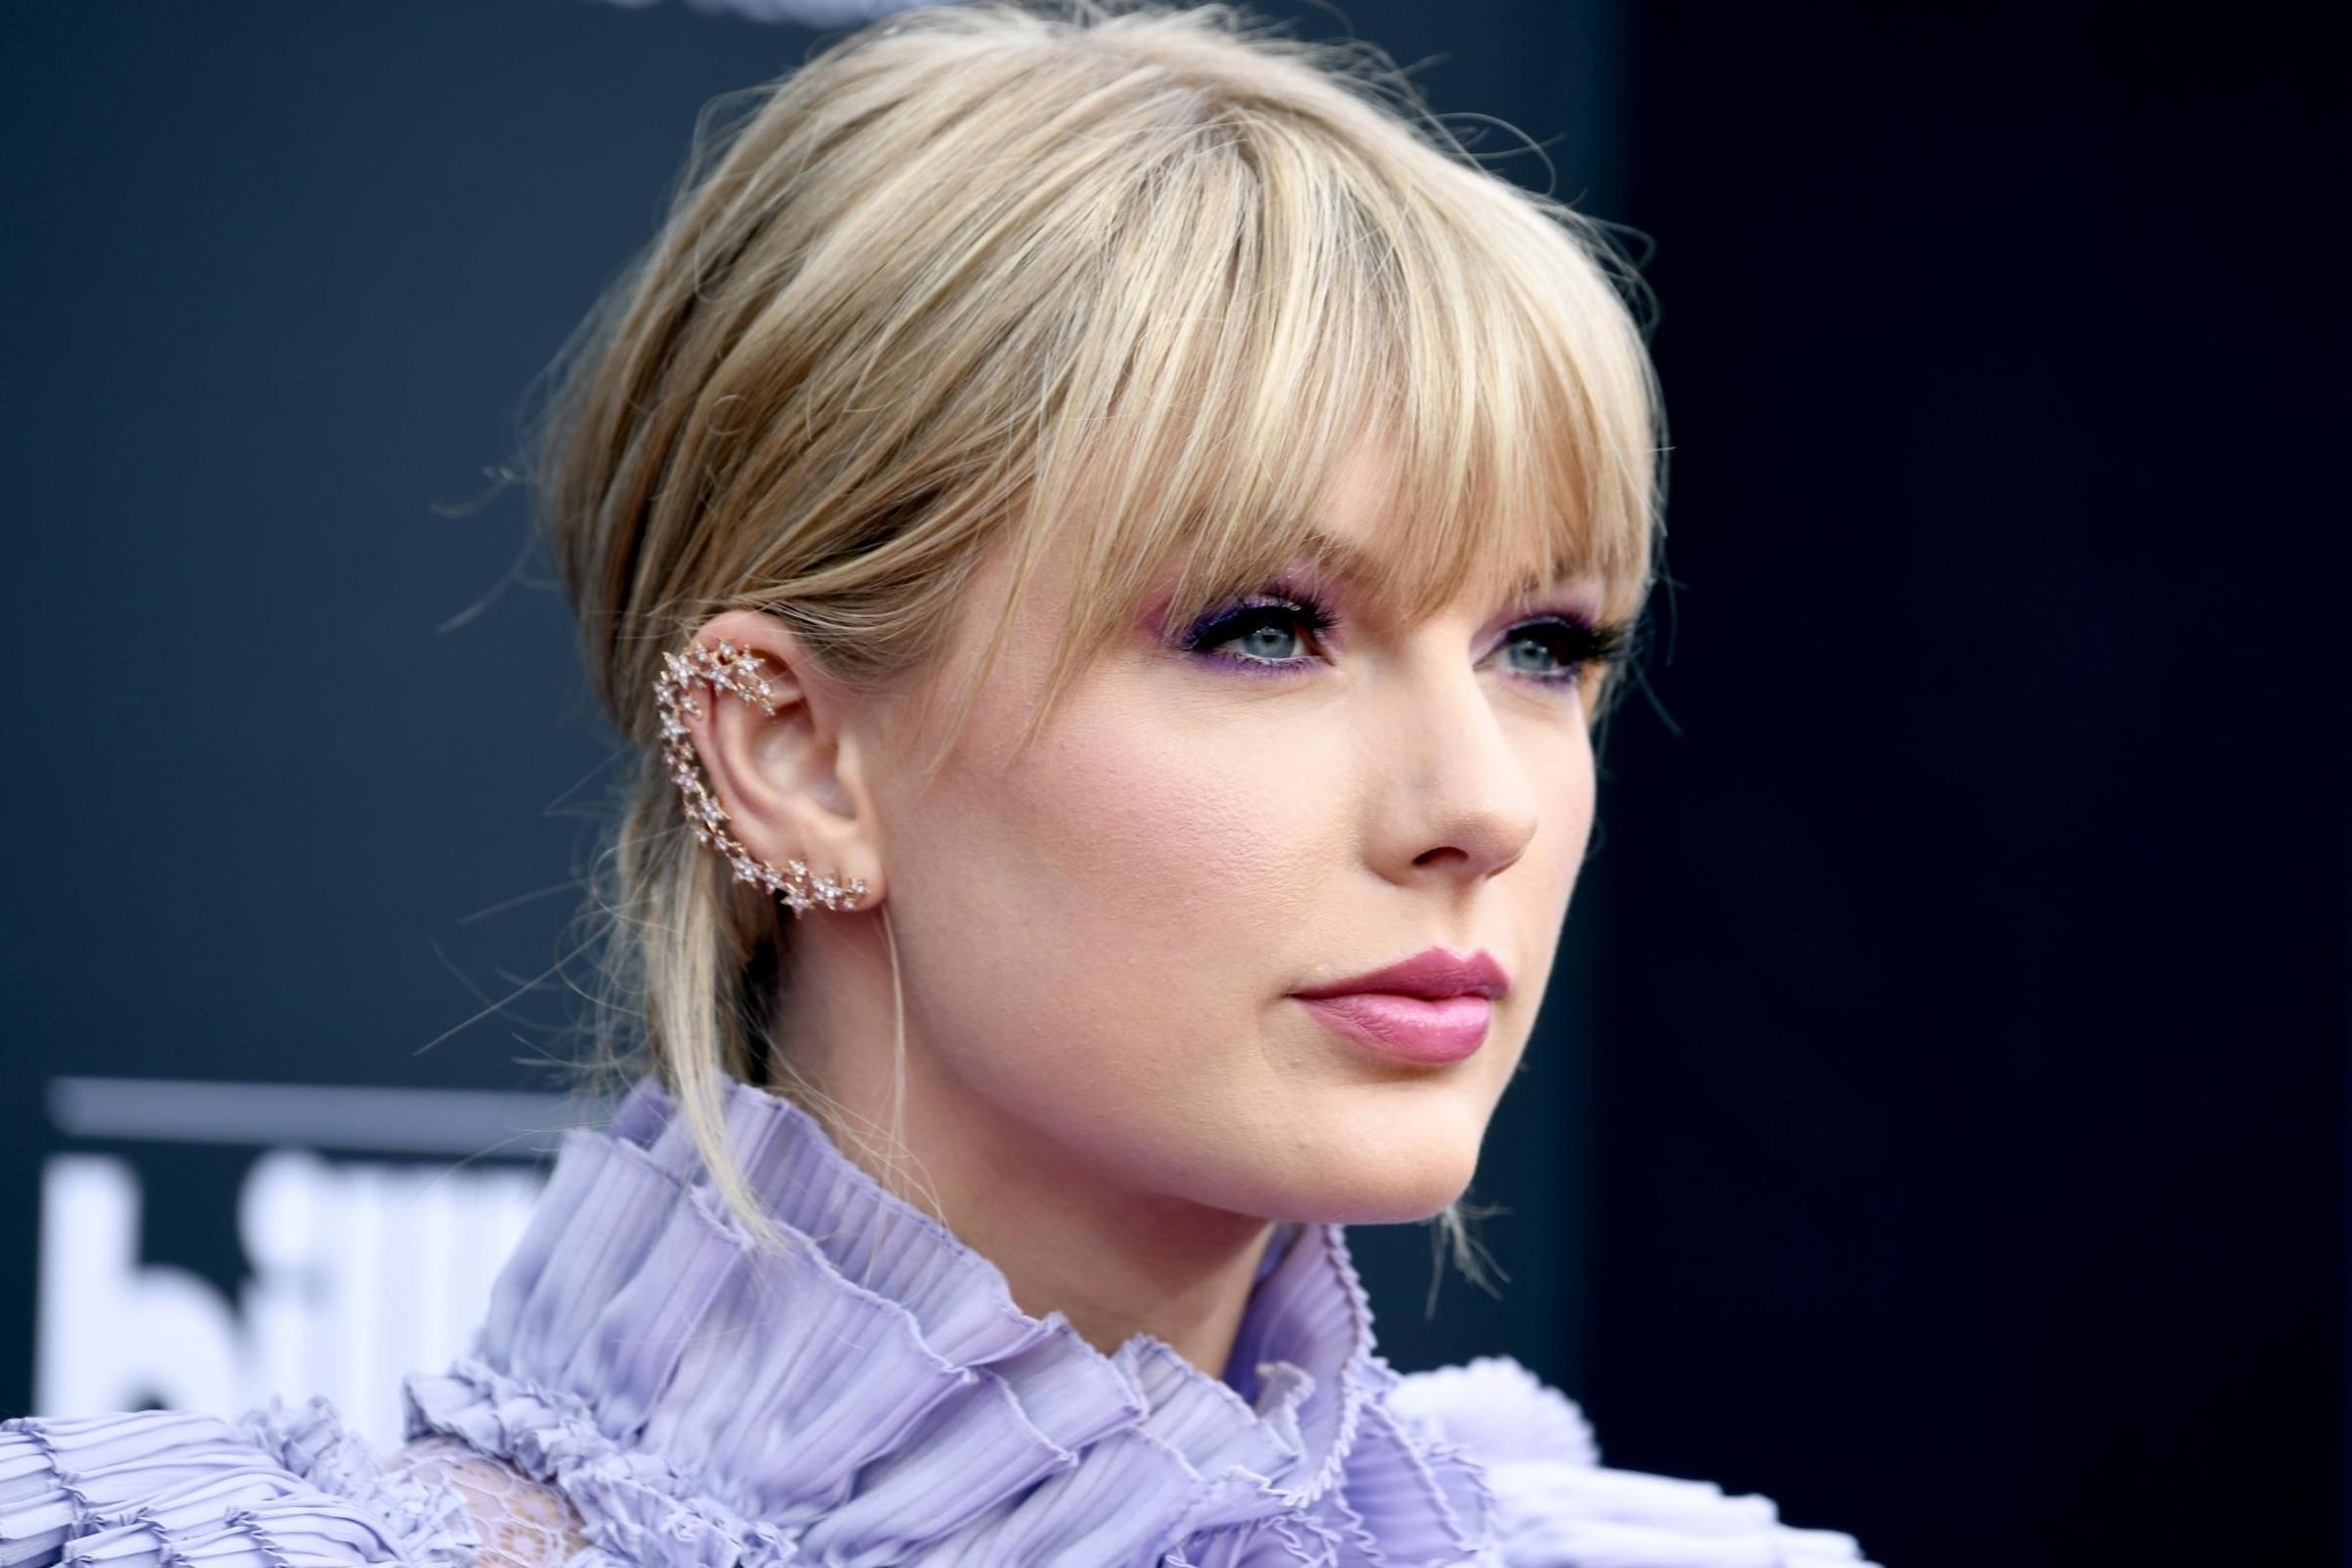 Taylor Swift's former label to re-release her old singles amid fan backlash and high-profile feuds